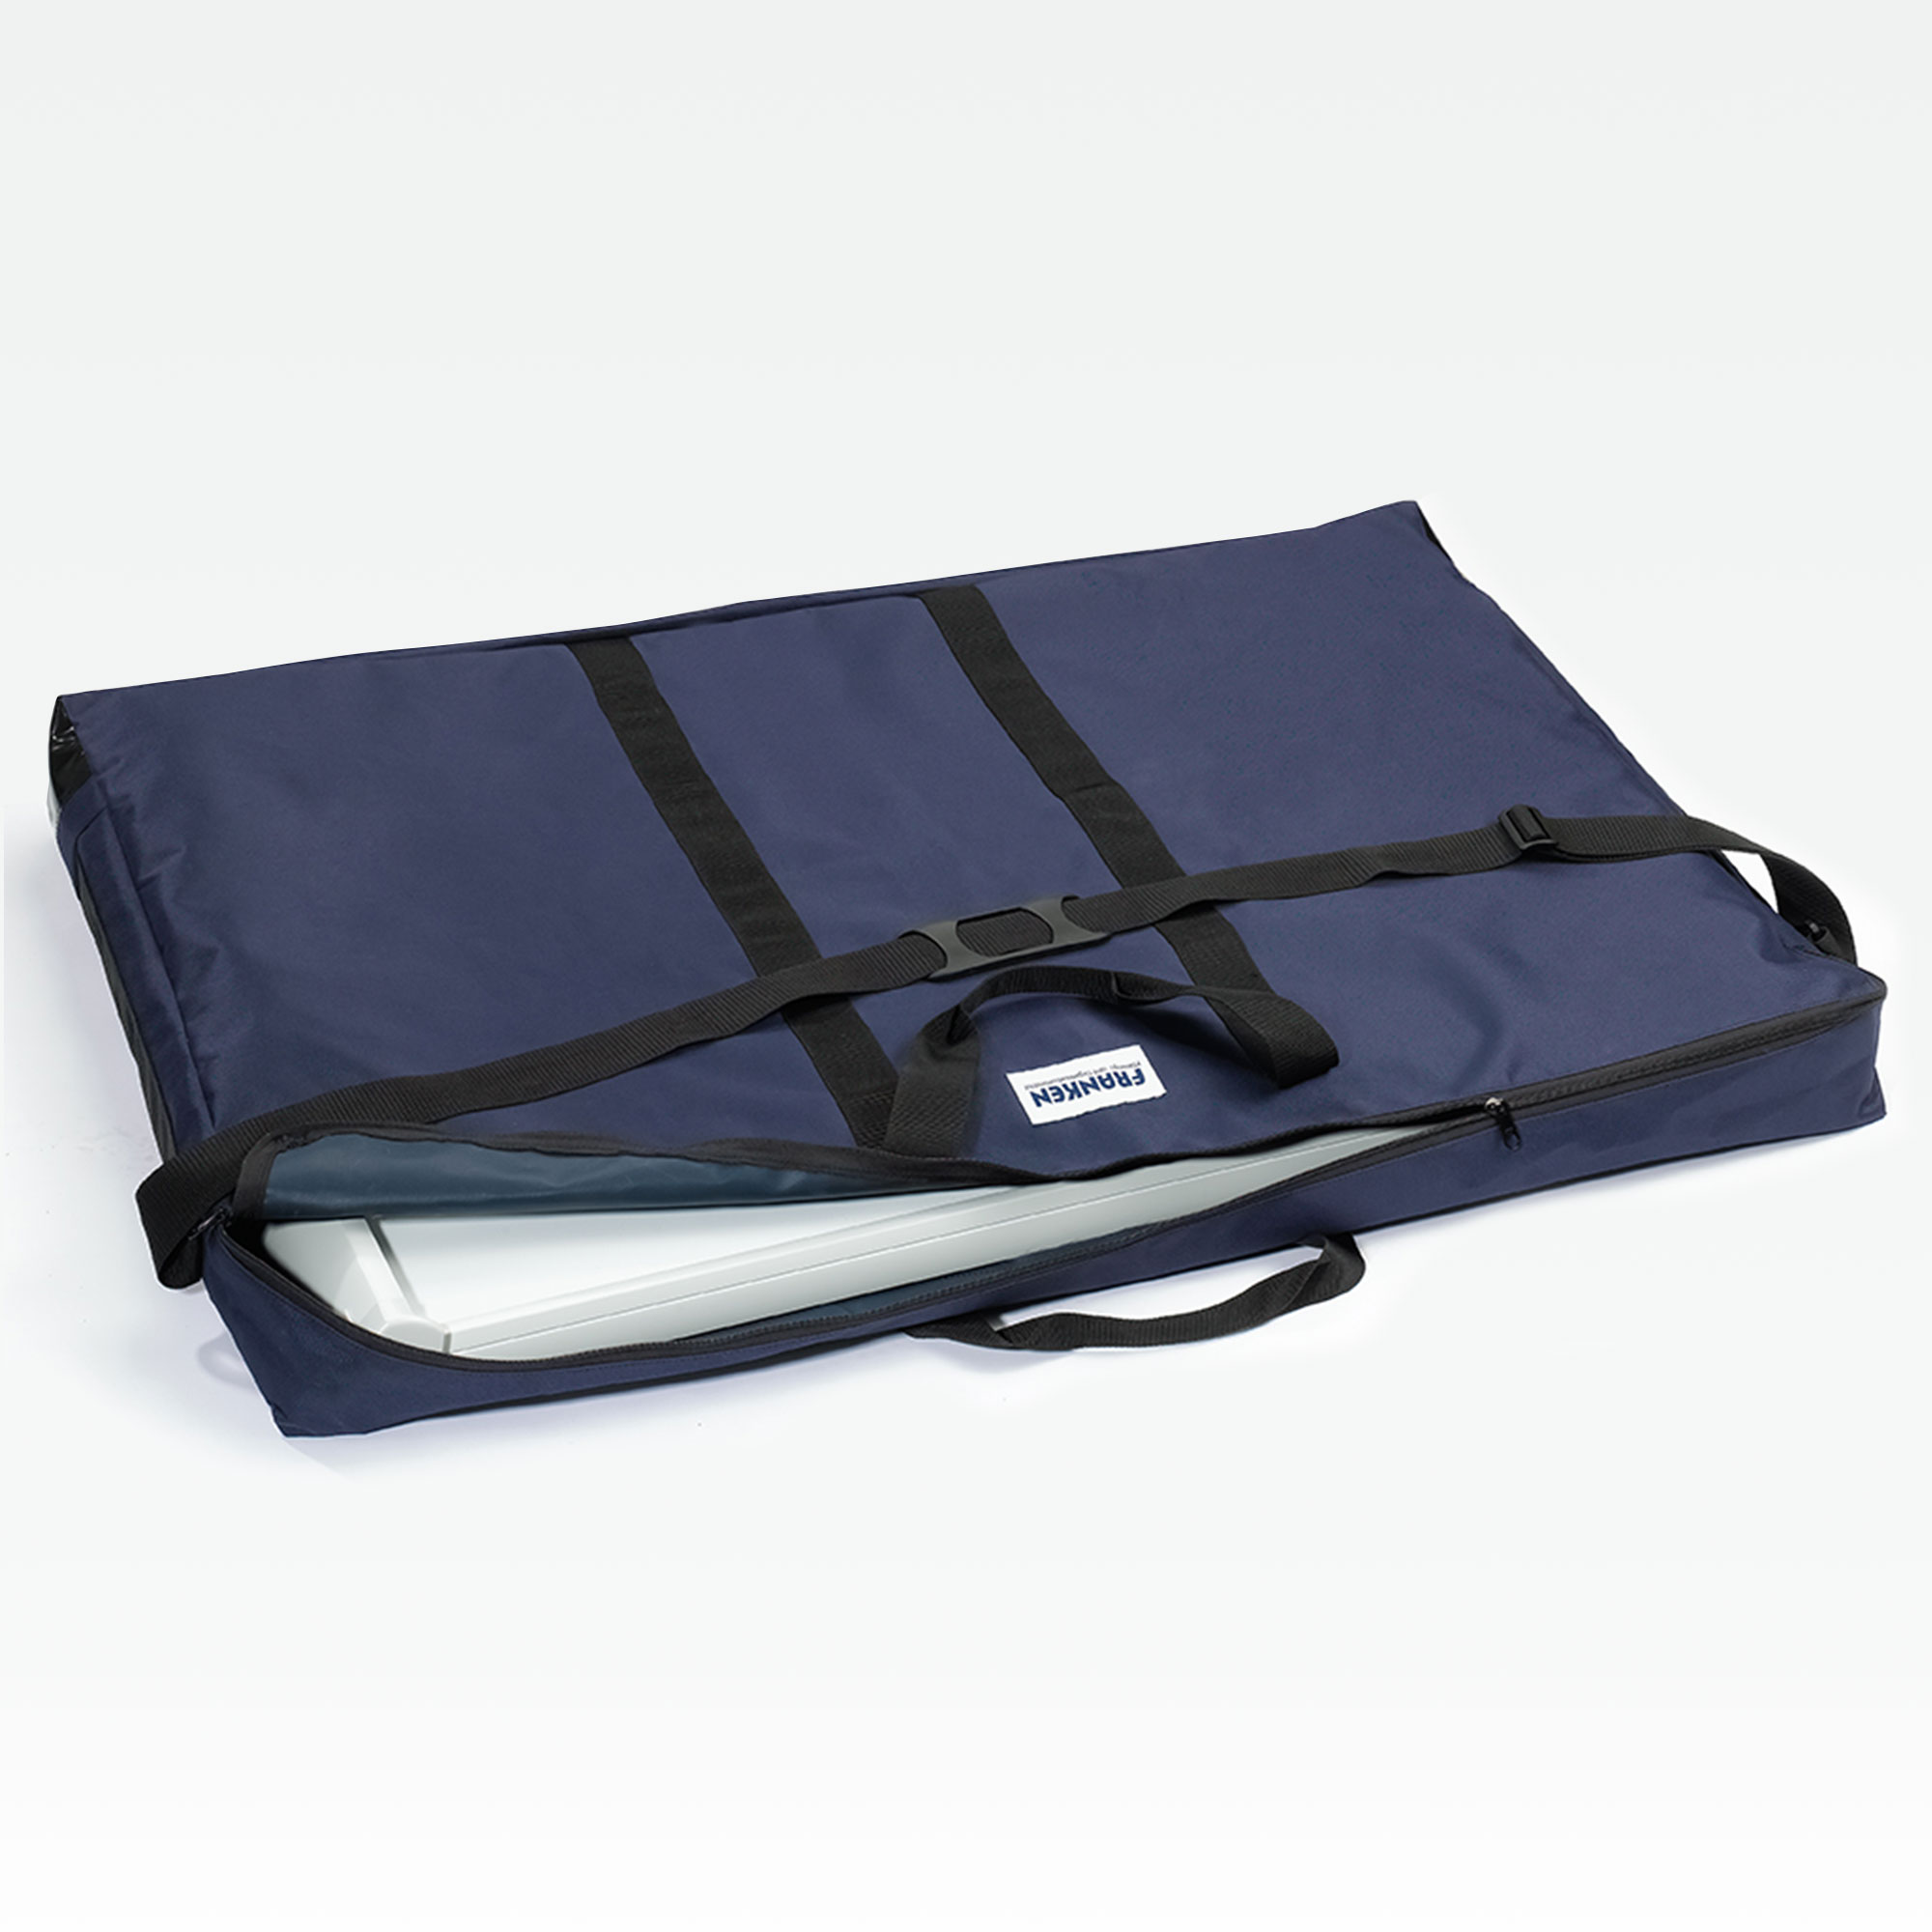 Storage Bag for Flipchart Easels